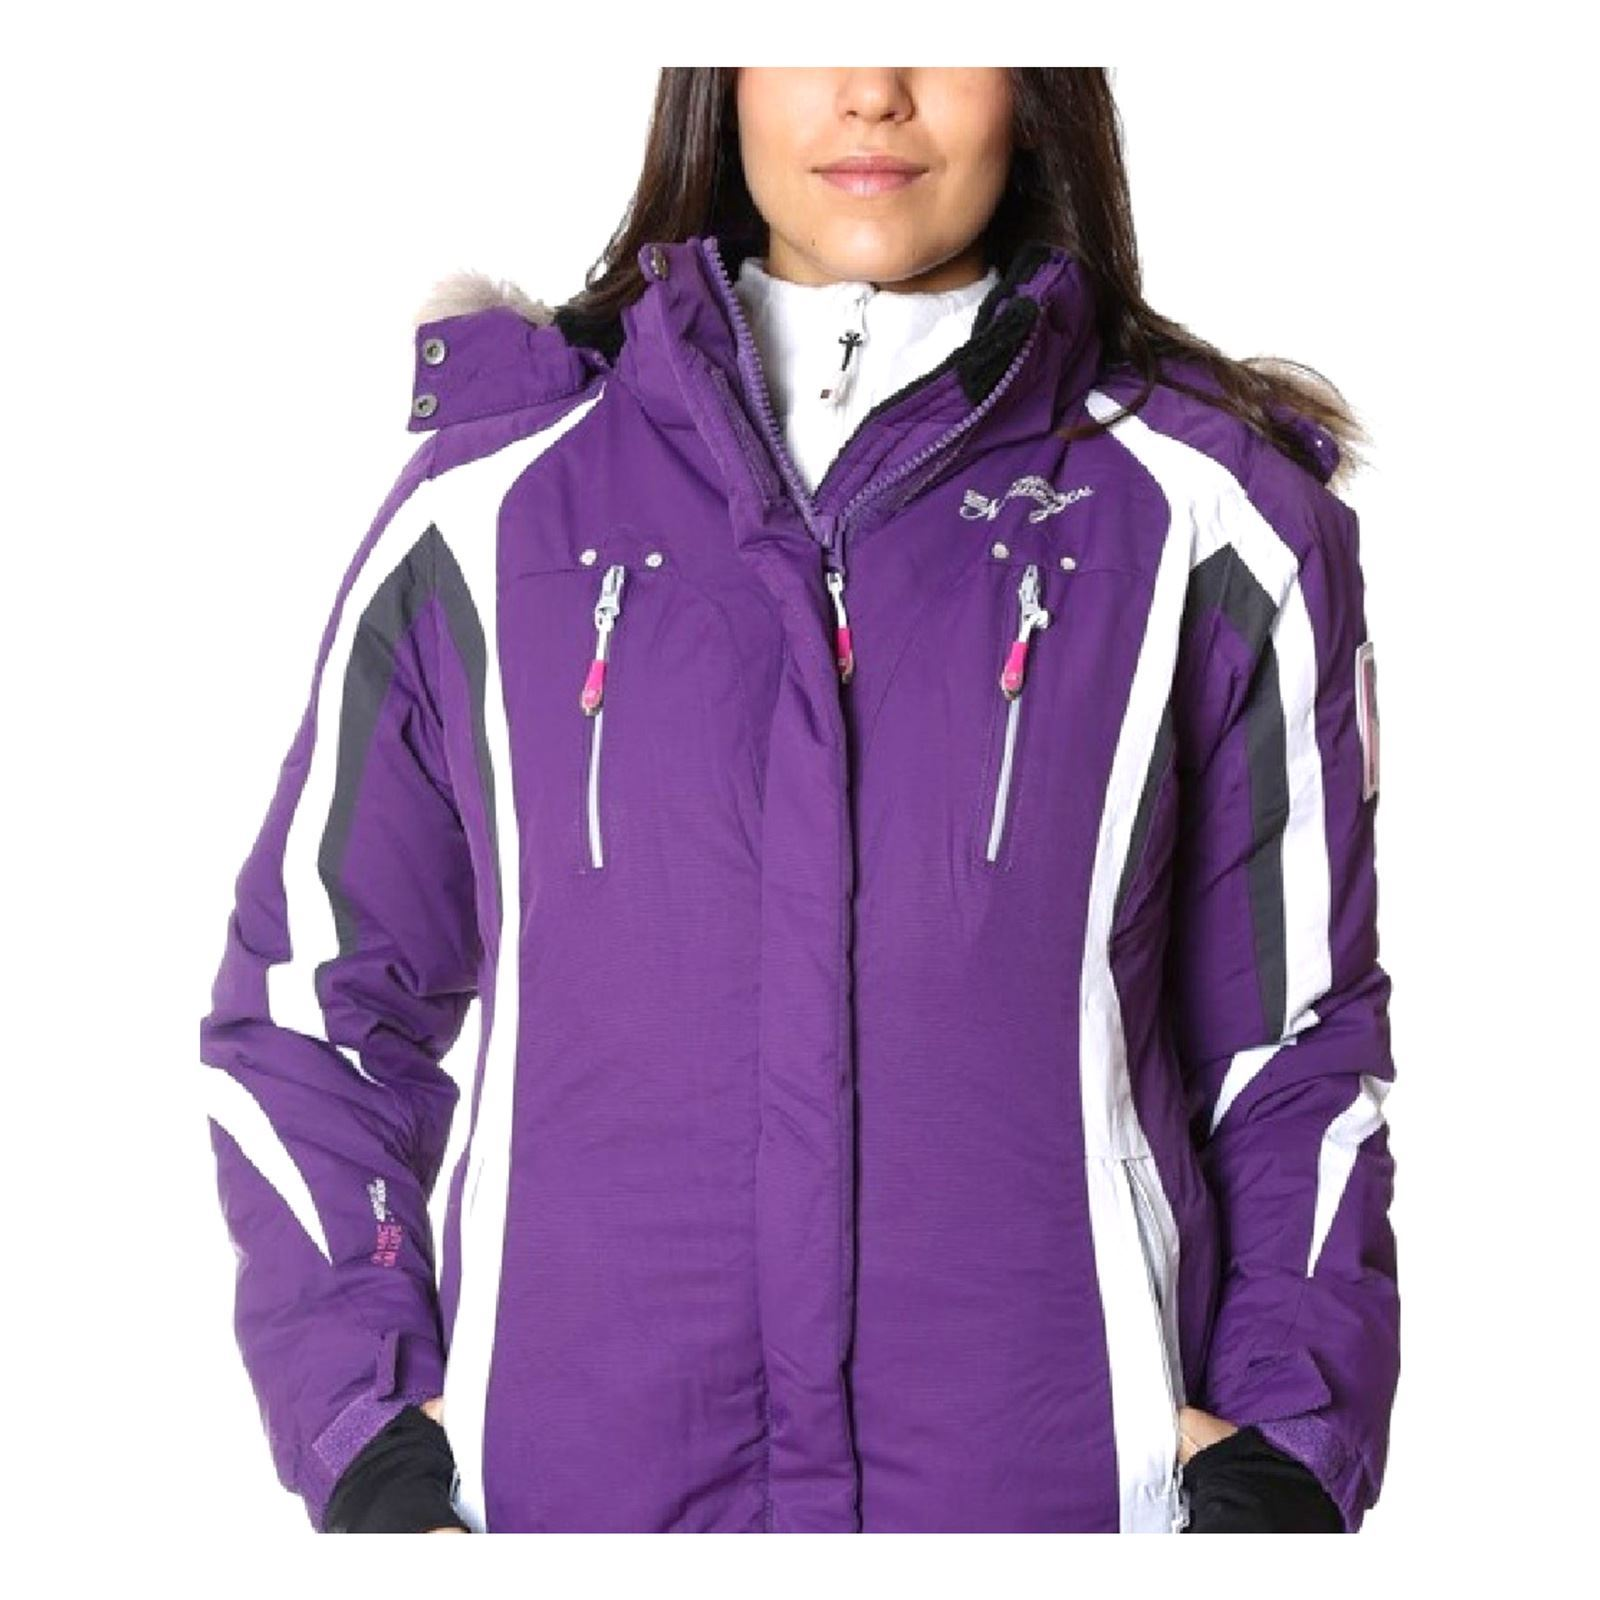 Violett Norway VéroniqueSkijacke Geographical Violett Geographical Norway VéroniqueSkijacke Geographical 8wOPnkX0